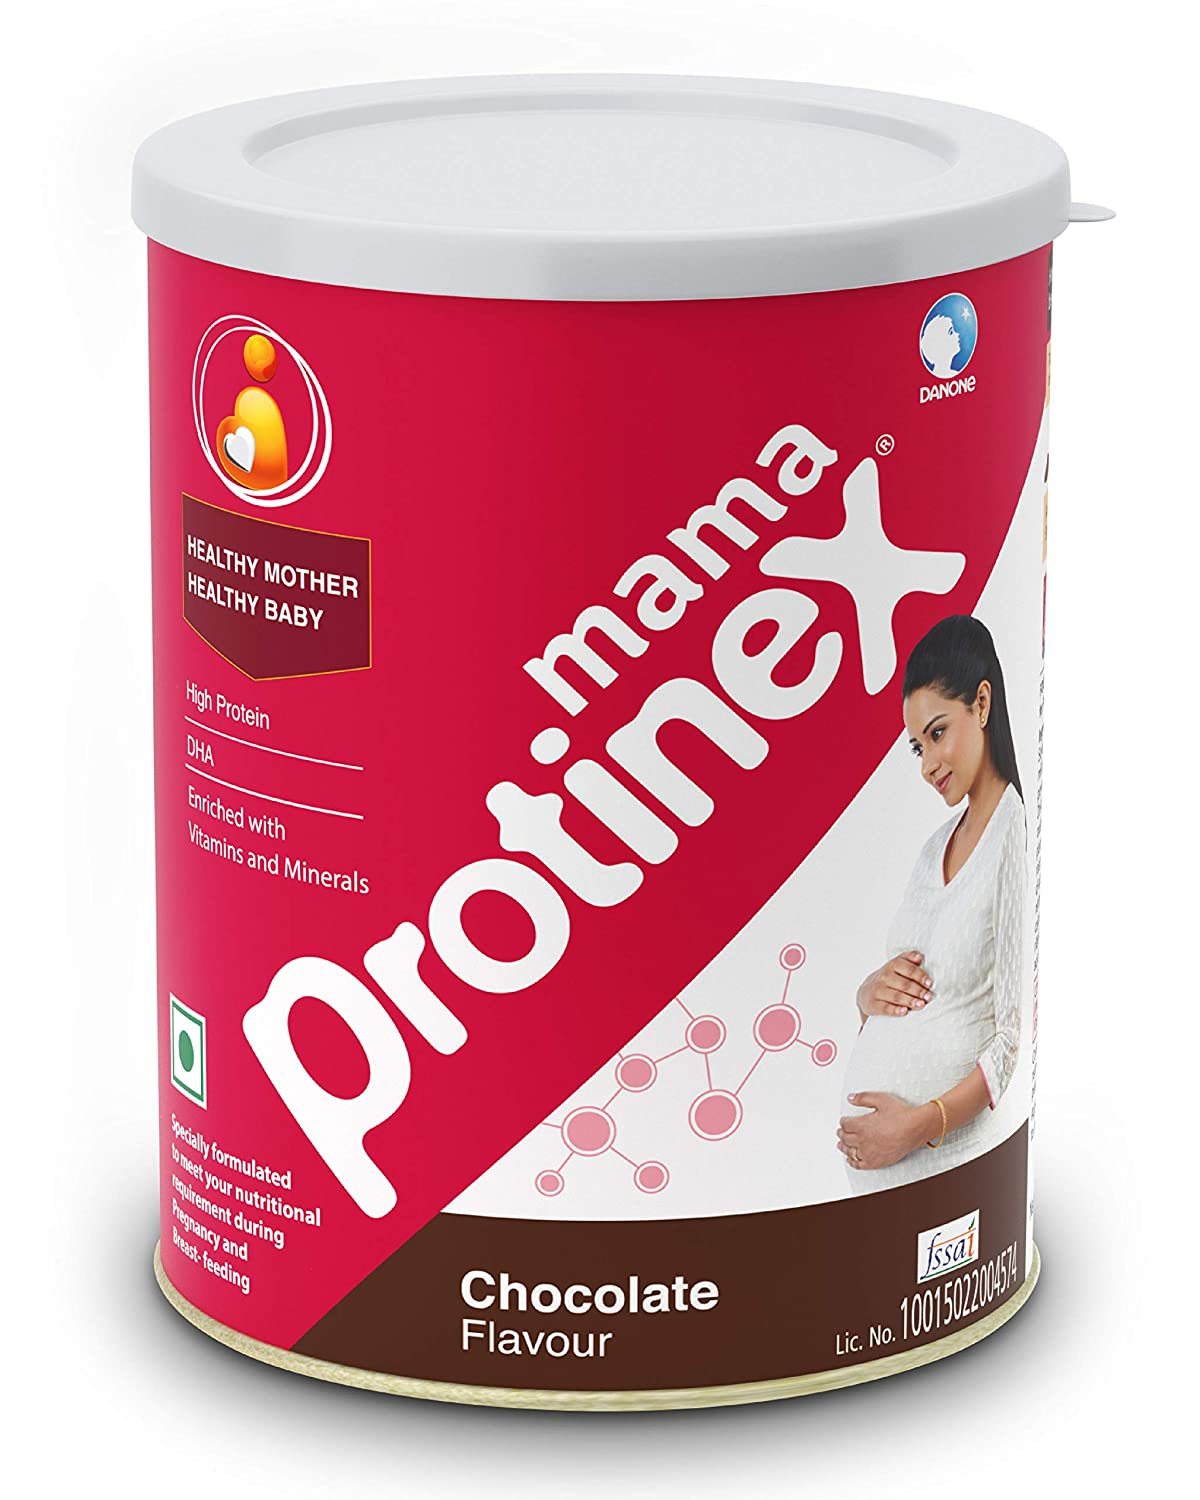 Protinex Mama Chocolate Flavour Ingredients